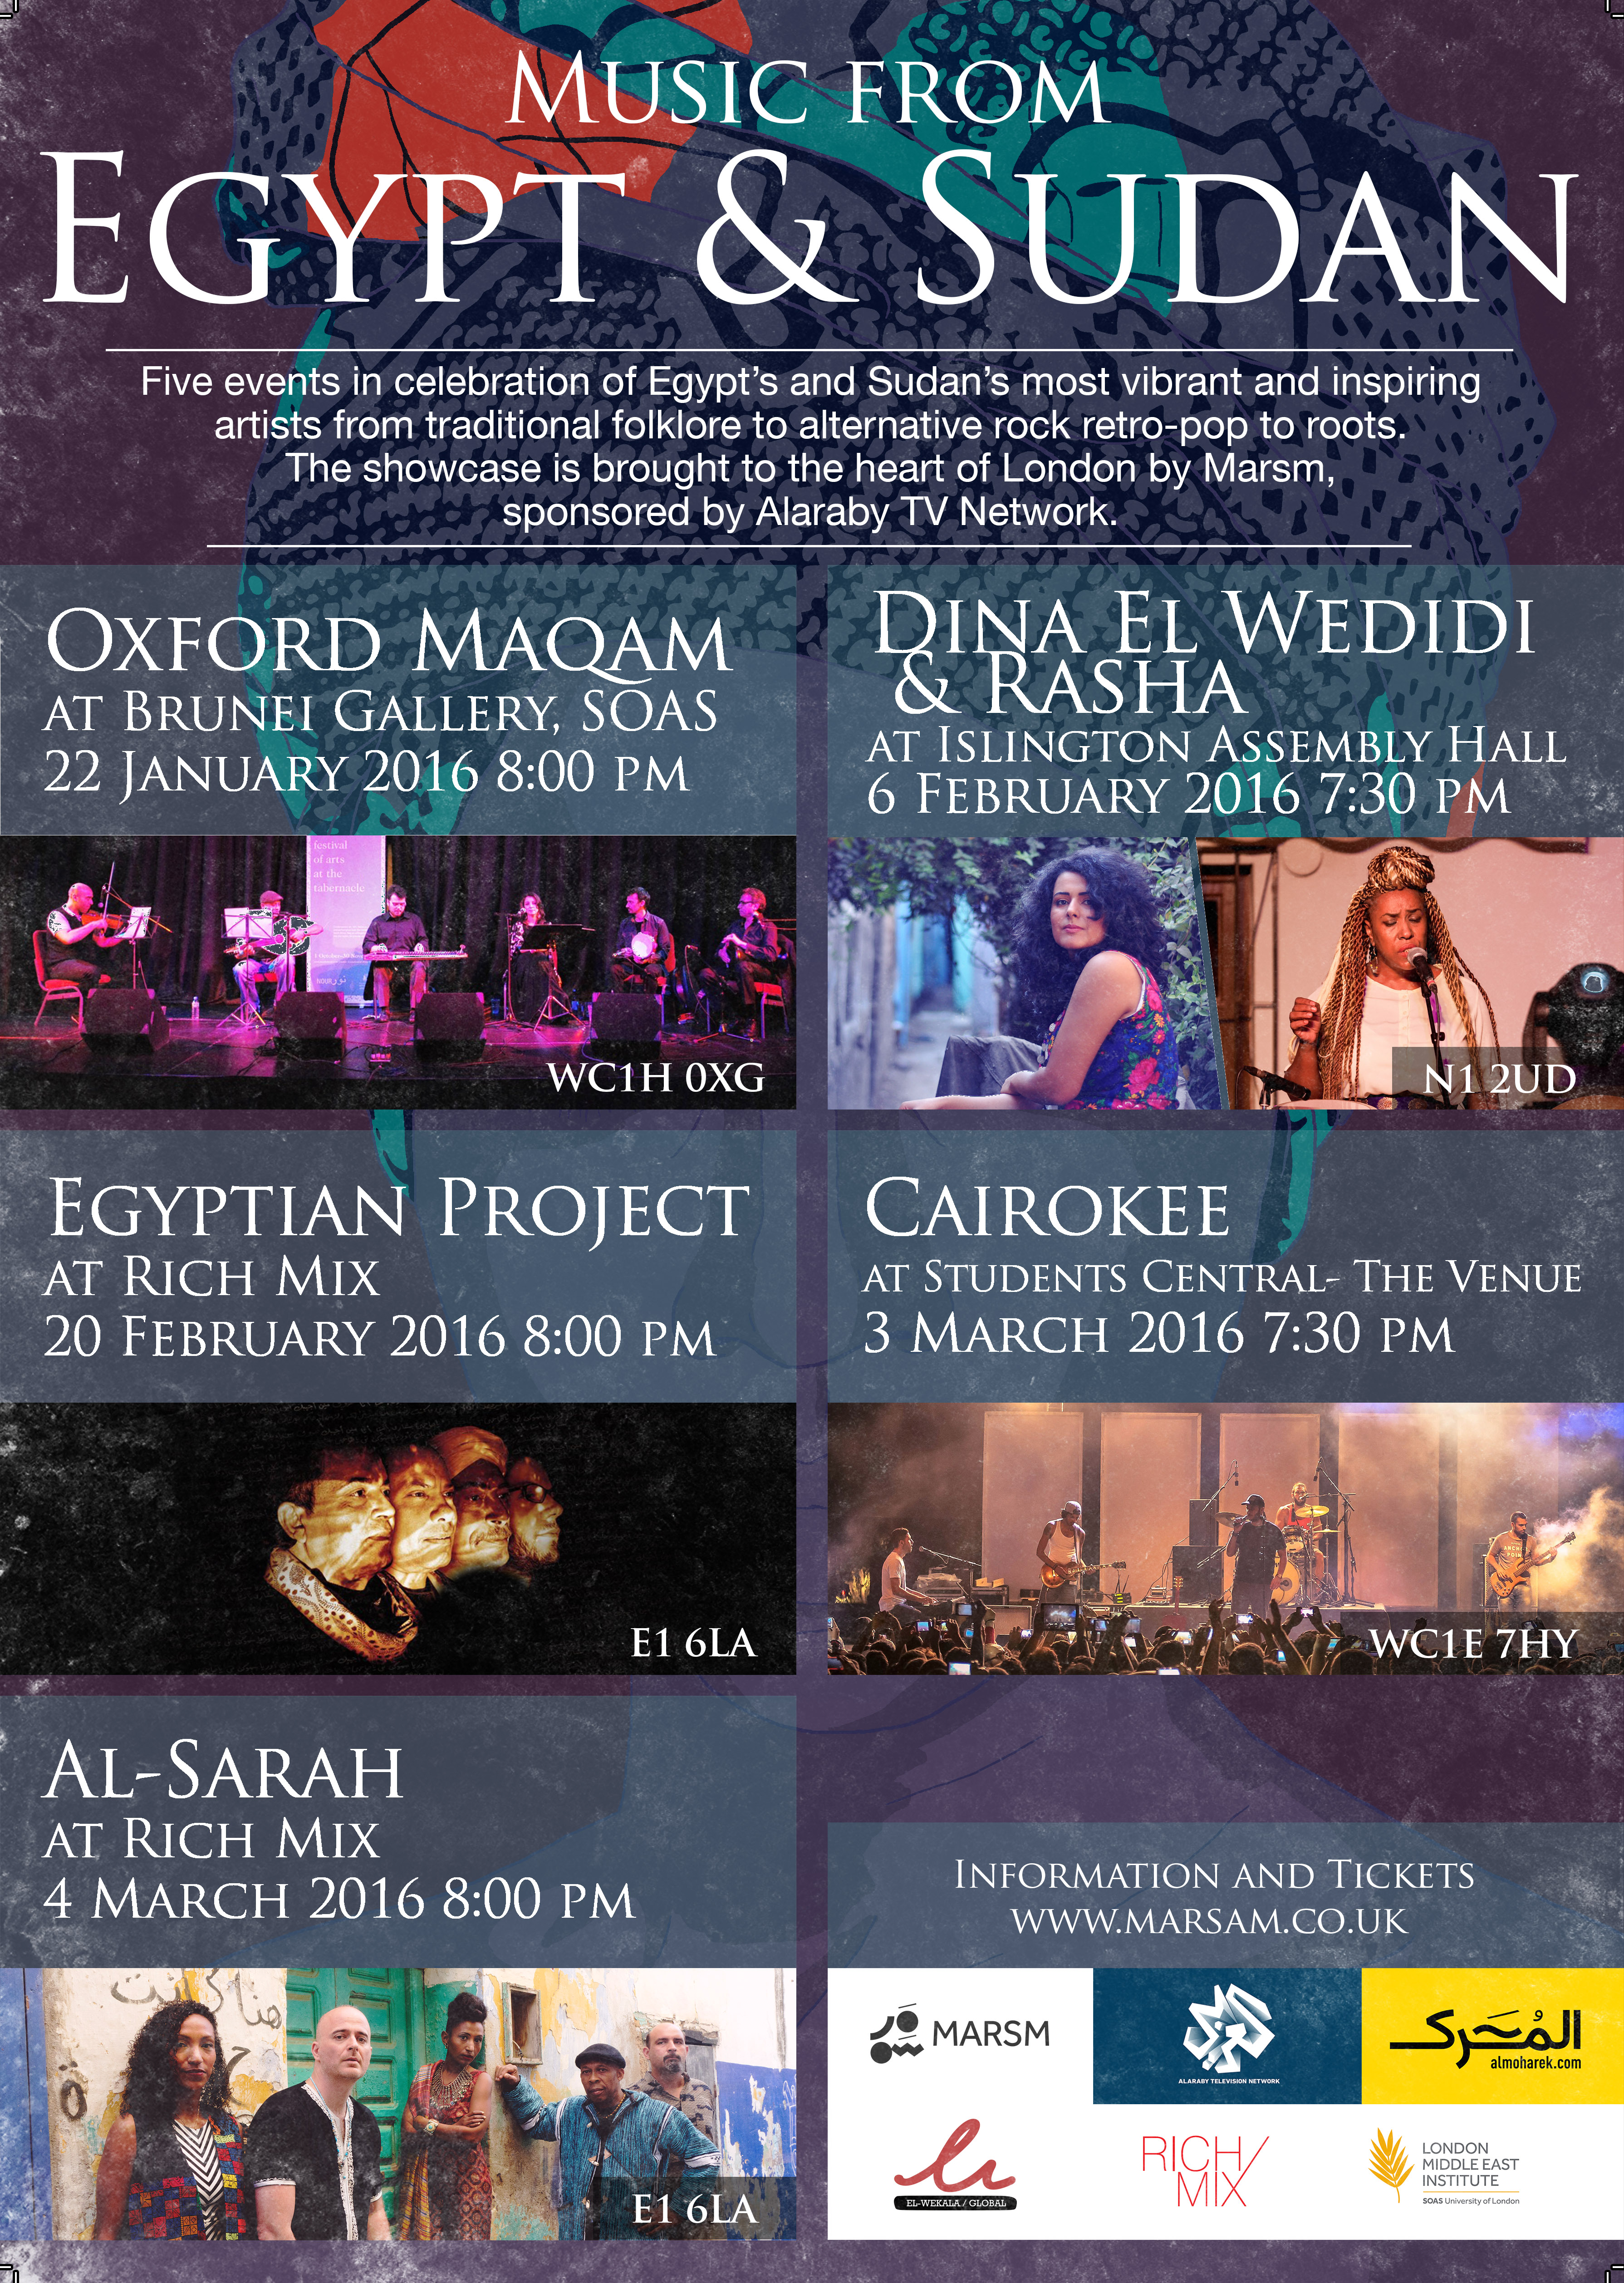 Music from Egypt & Sudan A3